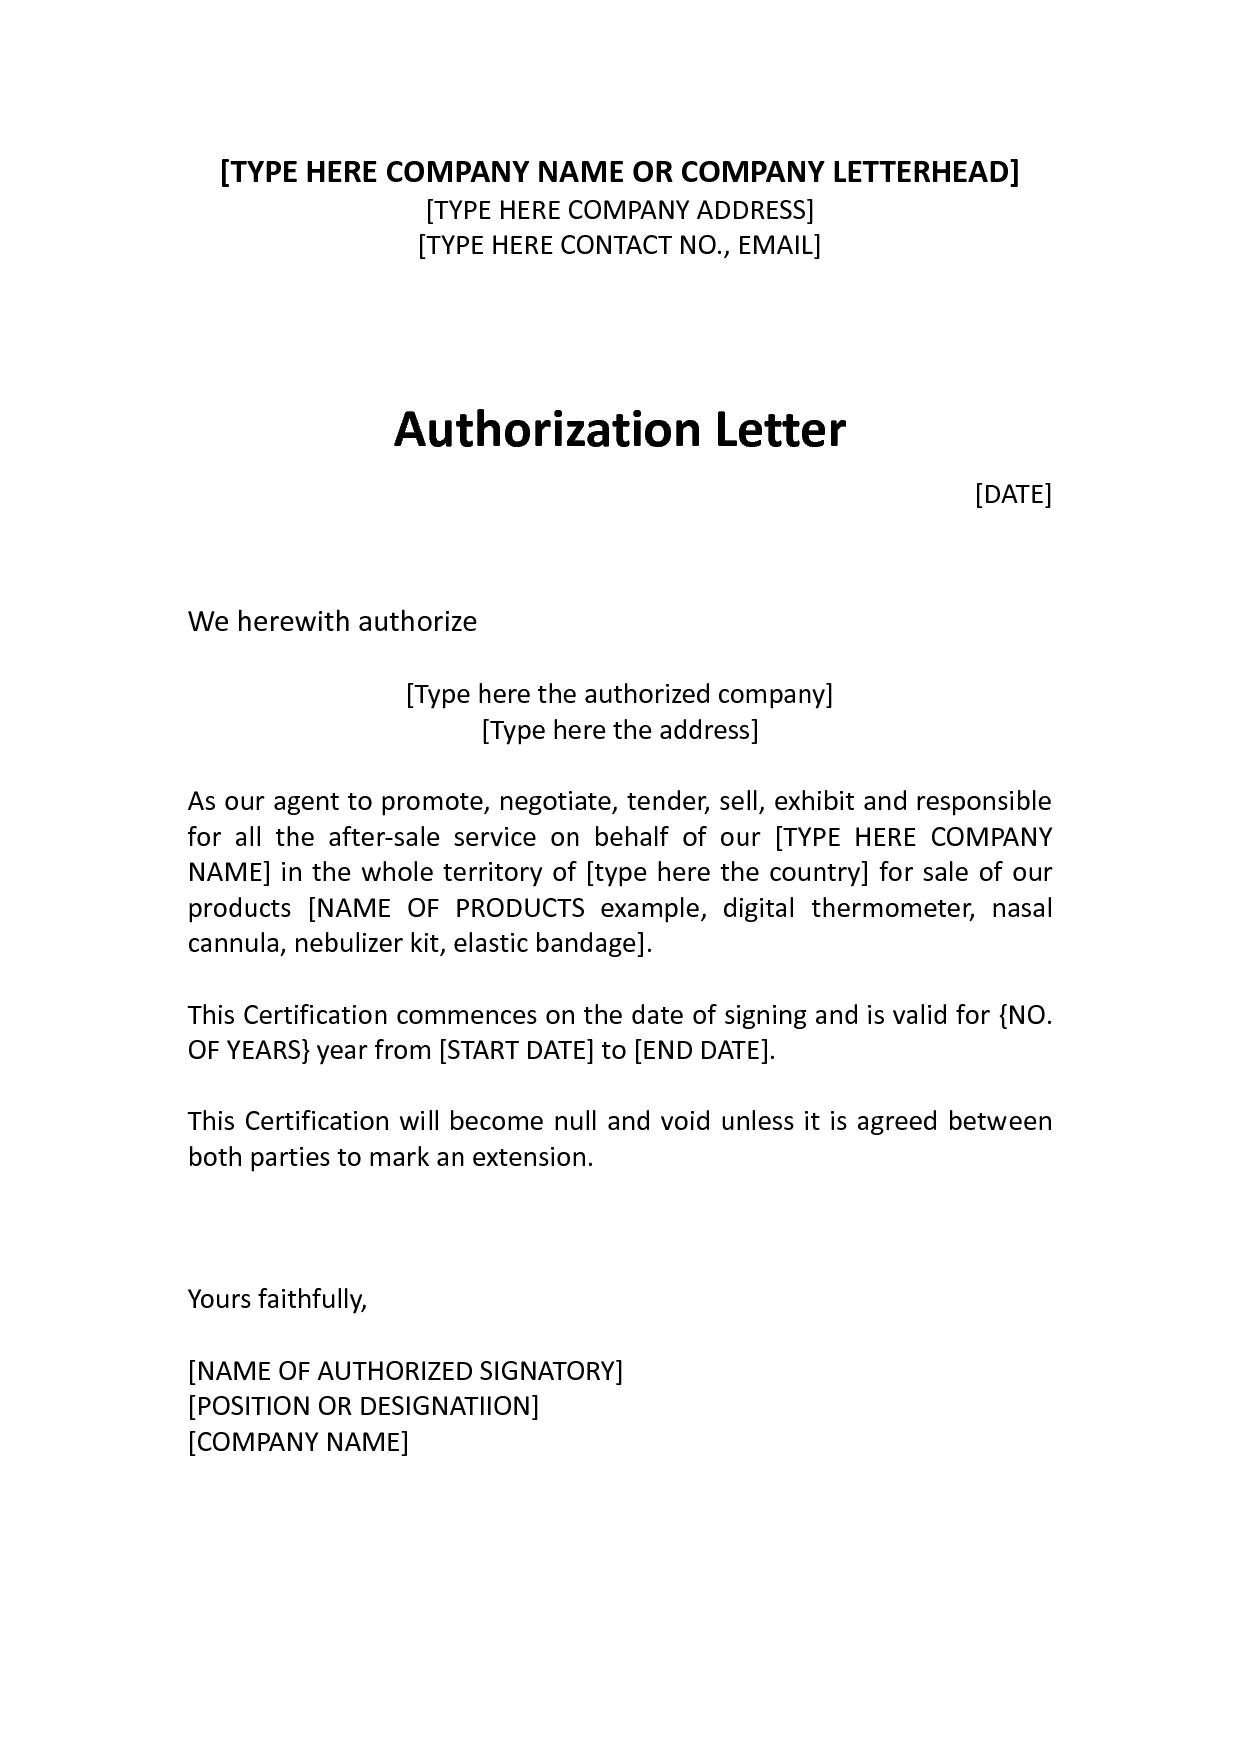 Proof Of Employment Letter Template Word - Authorization Distributor Letter Sample Distributor Dealer